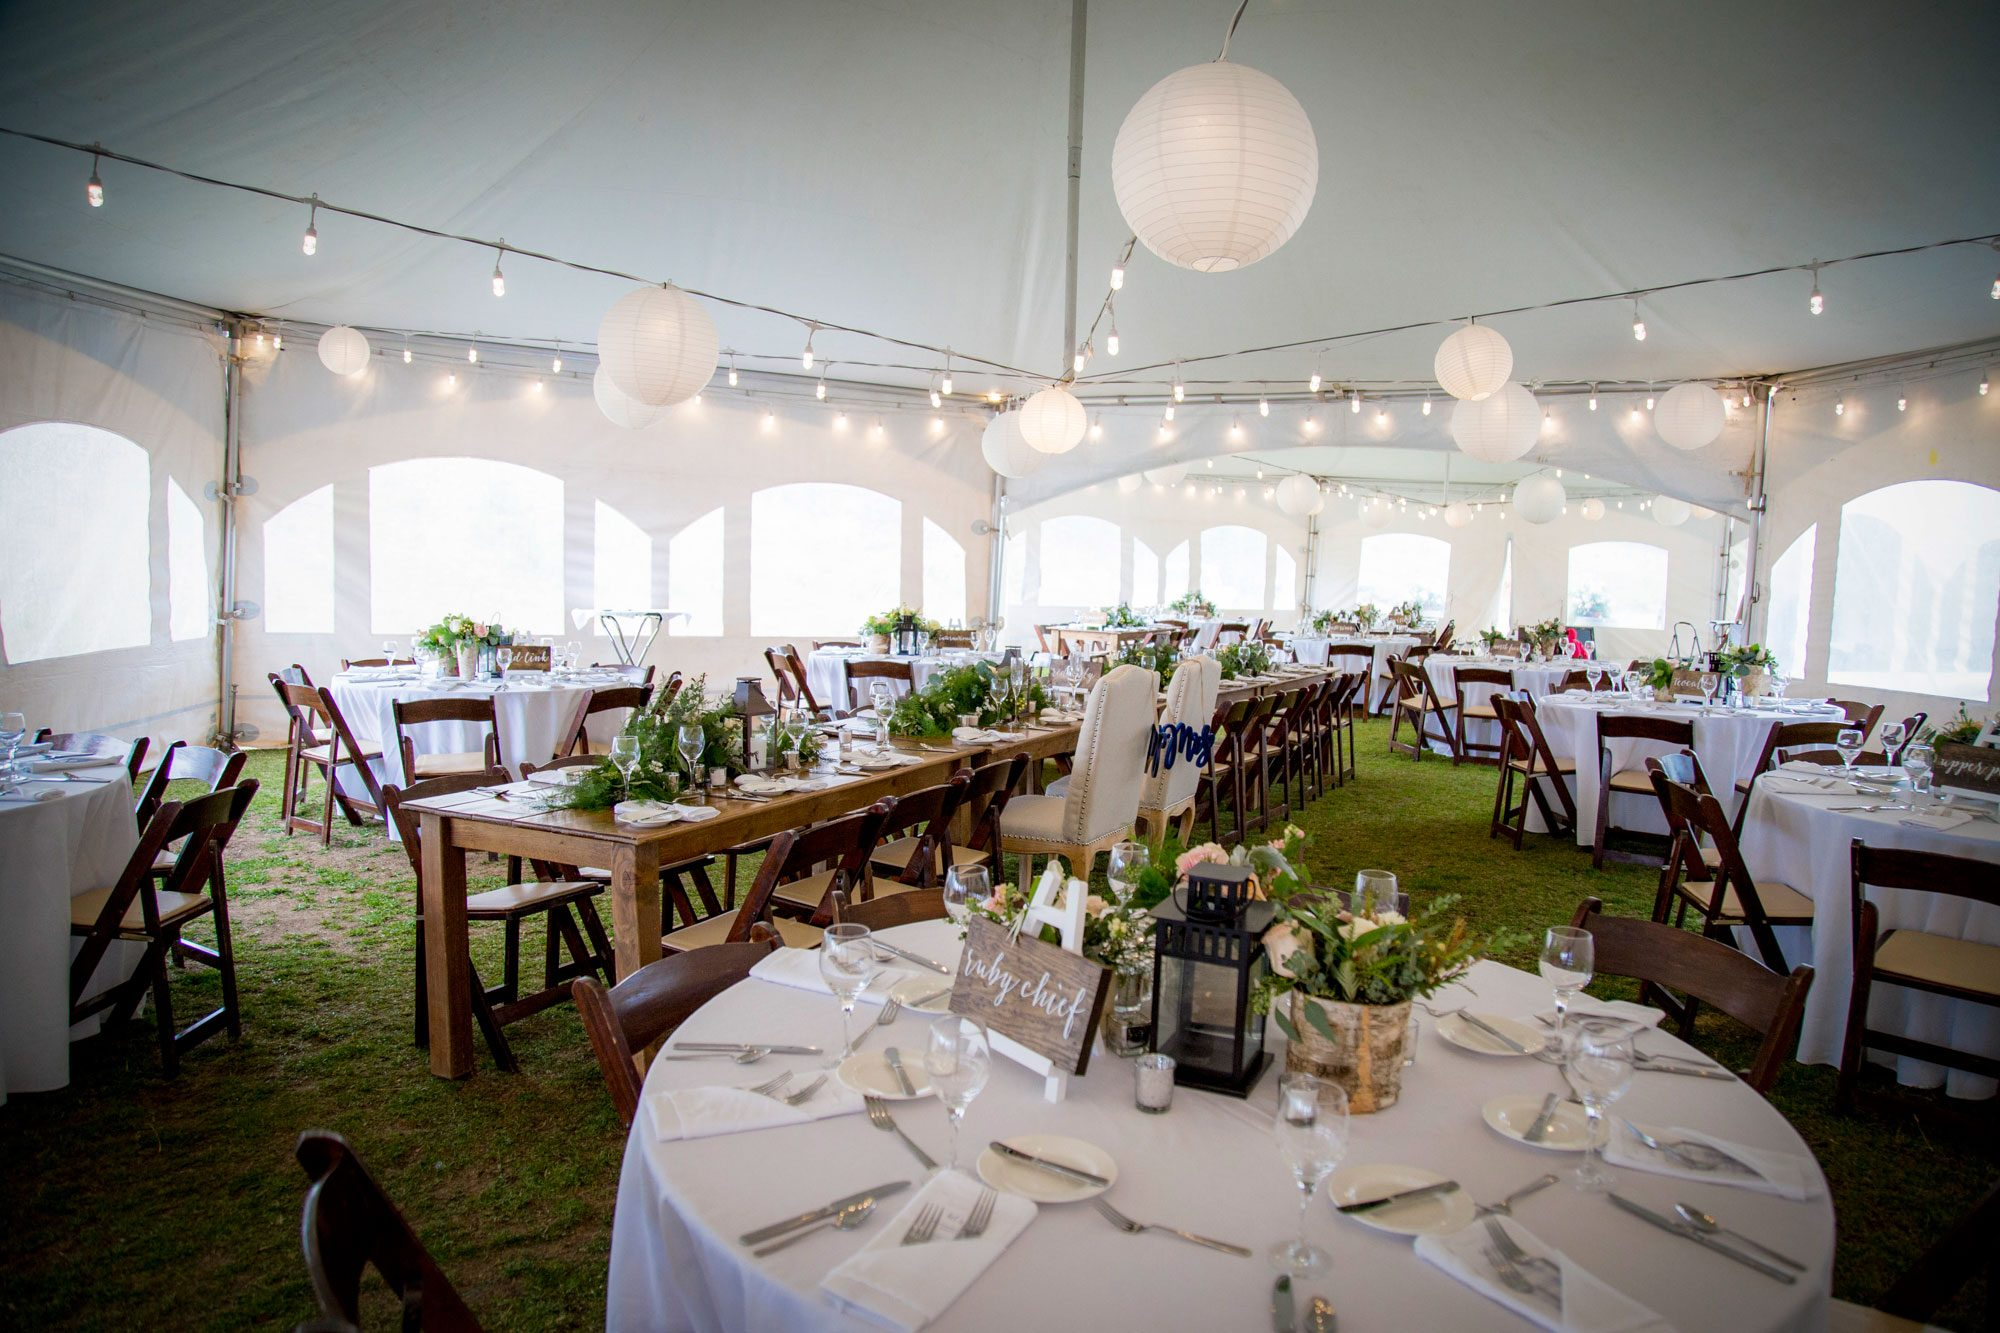 Tent wedding decor at Crested Butte Mountain Resort, Colorado